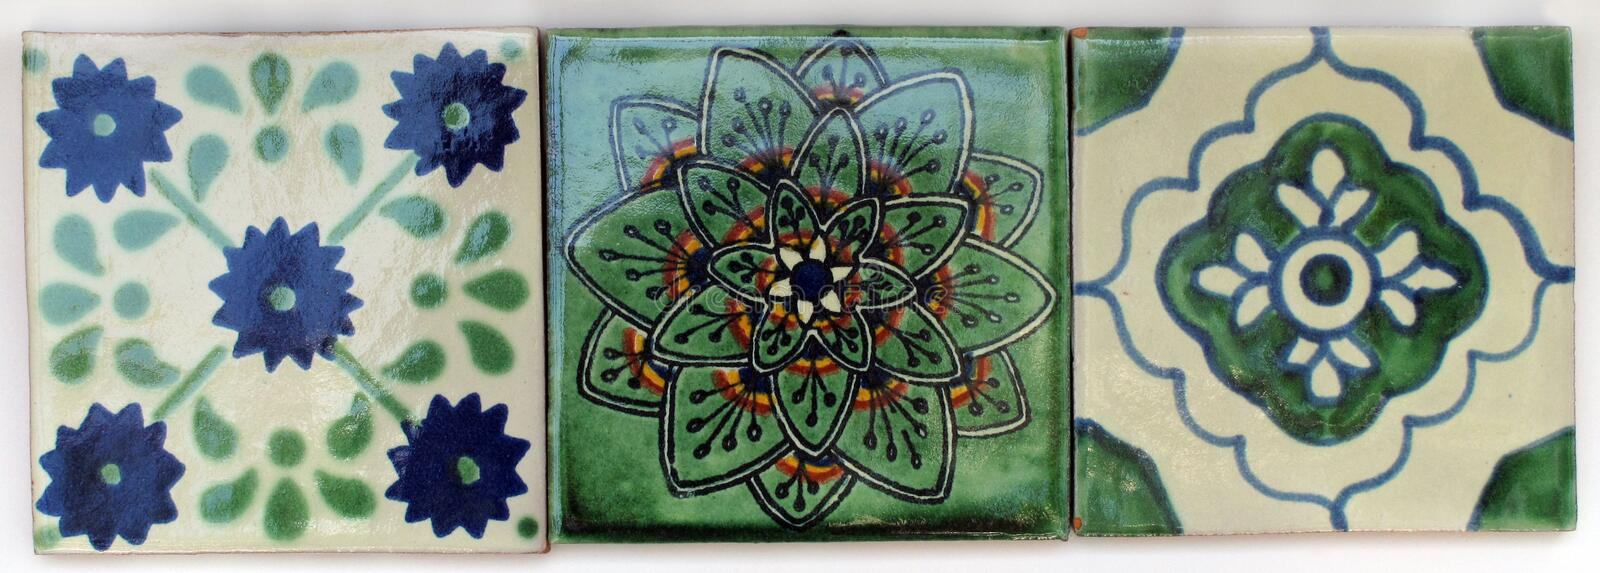 Three Square Mexican tiles royalty free stock photography